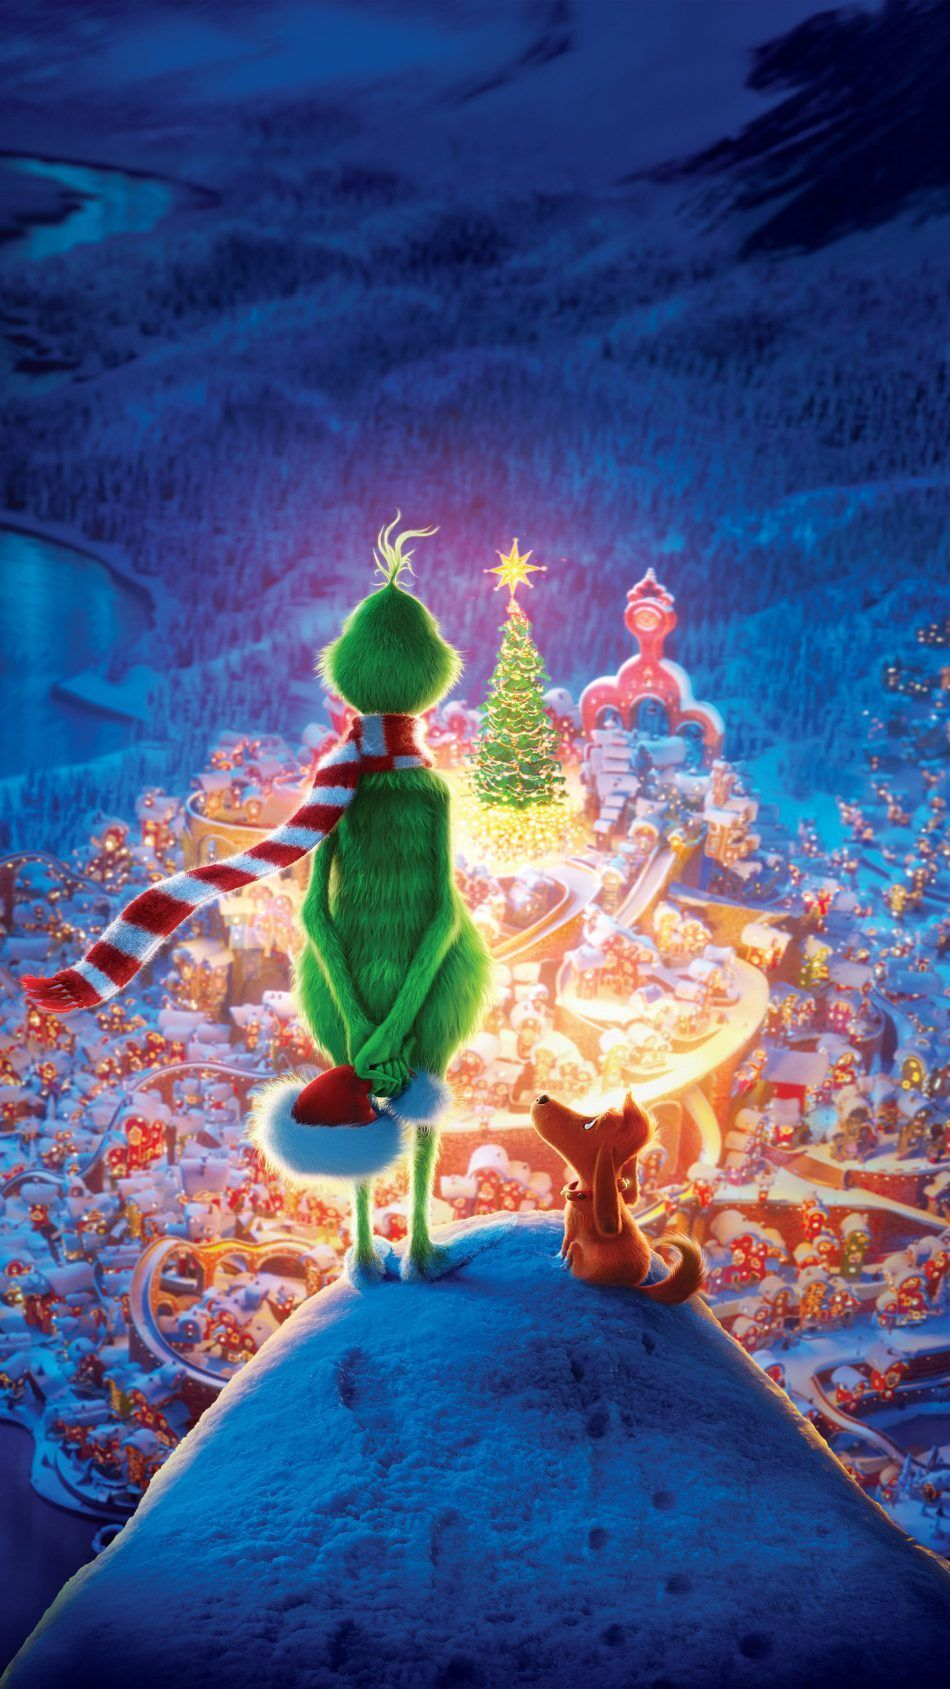 950x1689 The Grinch Animation 2018 | Movie Wallpapers | Pinterest | Iphone ...